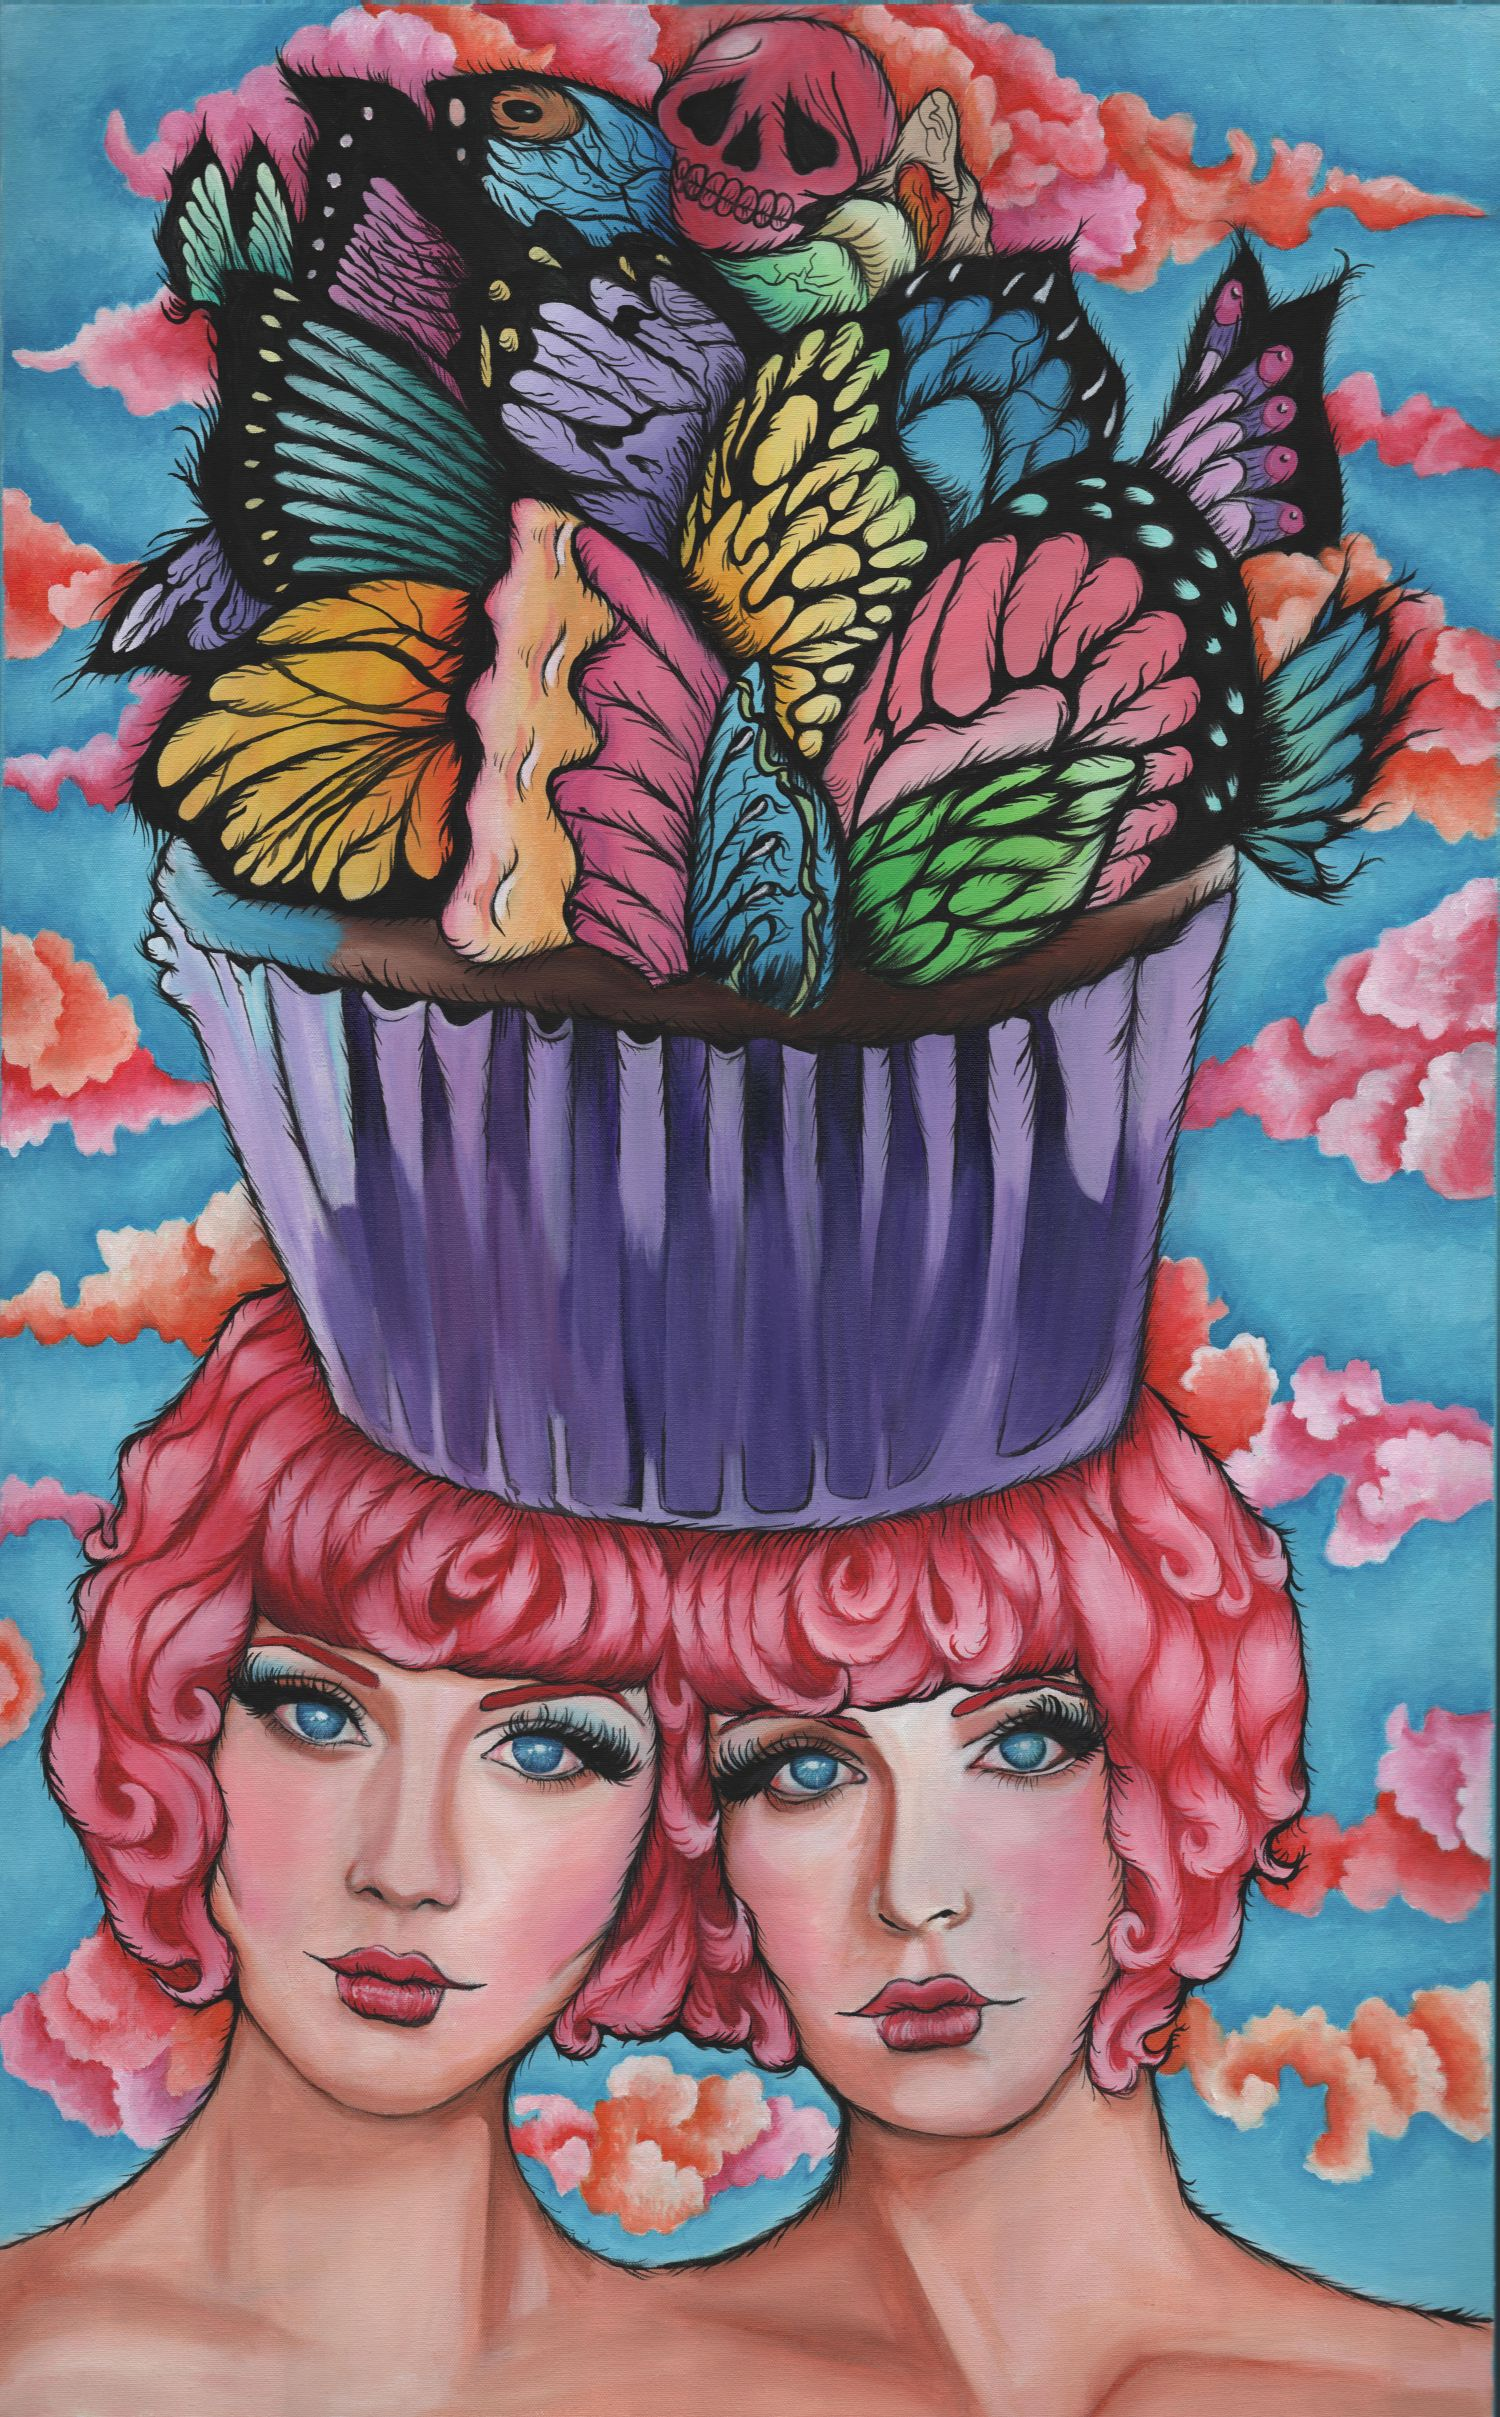 Cupcake Twins30 in. x 48 in. Acrylic on Canvas